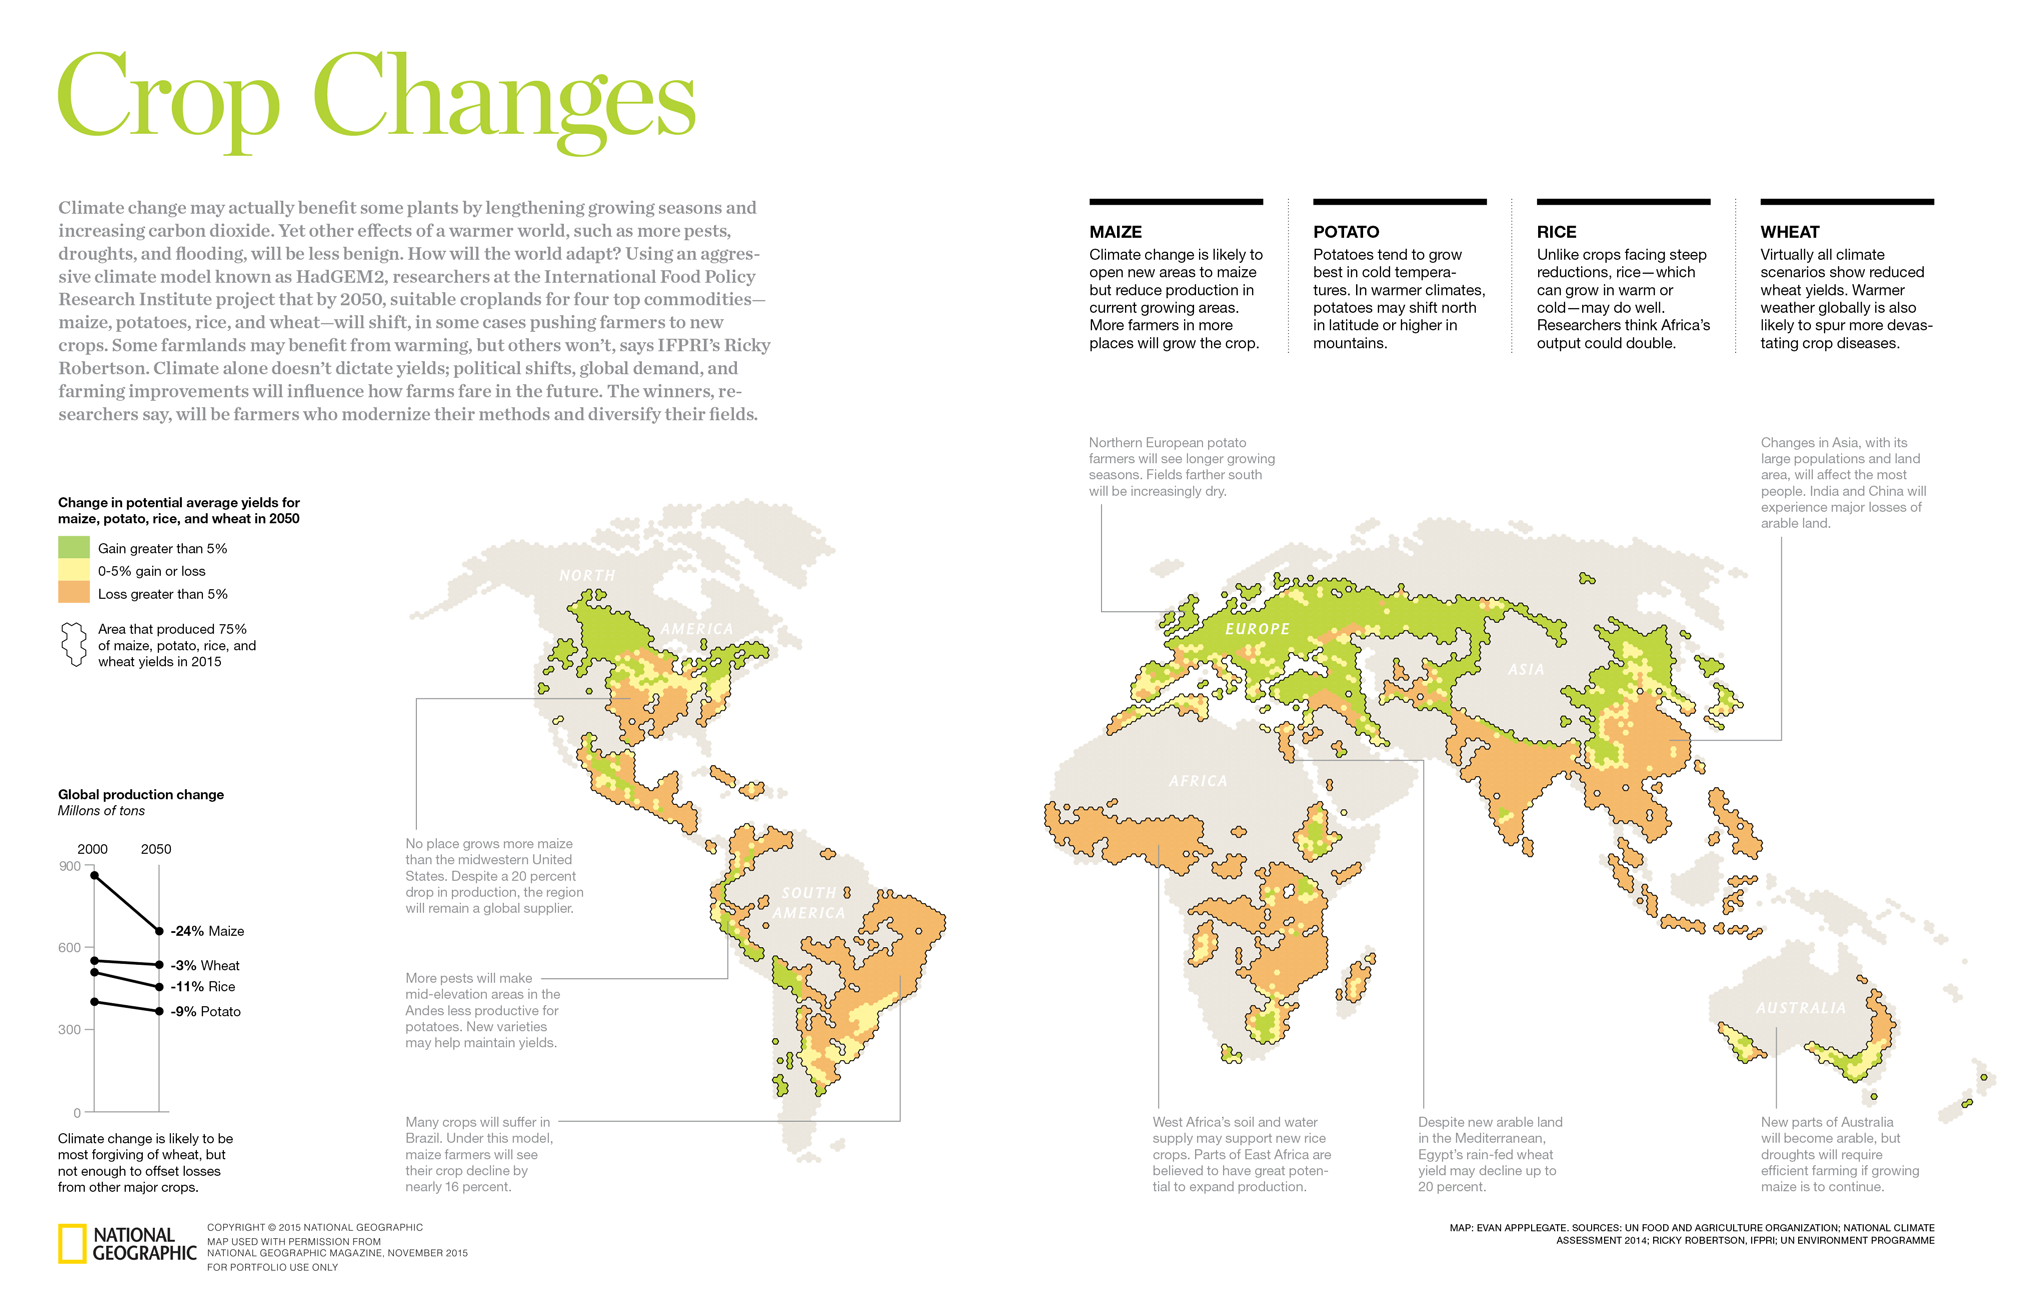 Earth gets most of its calories from wheat, rice, corn and potatoes. Climate change will hurt production of all of these, and I don't think we can monoculture our way out of this one. With words by Daniel Stone and data wrasslin' by Ricky Robertson of IFPRI.